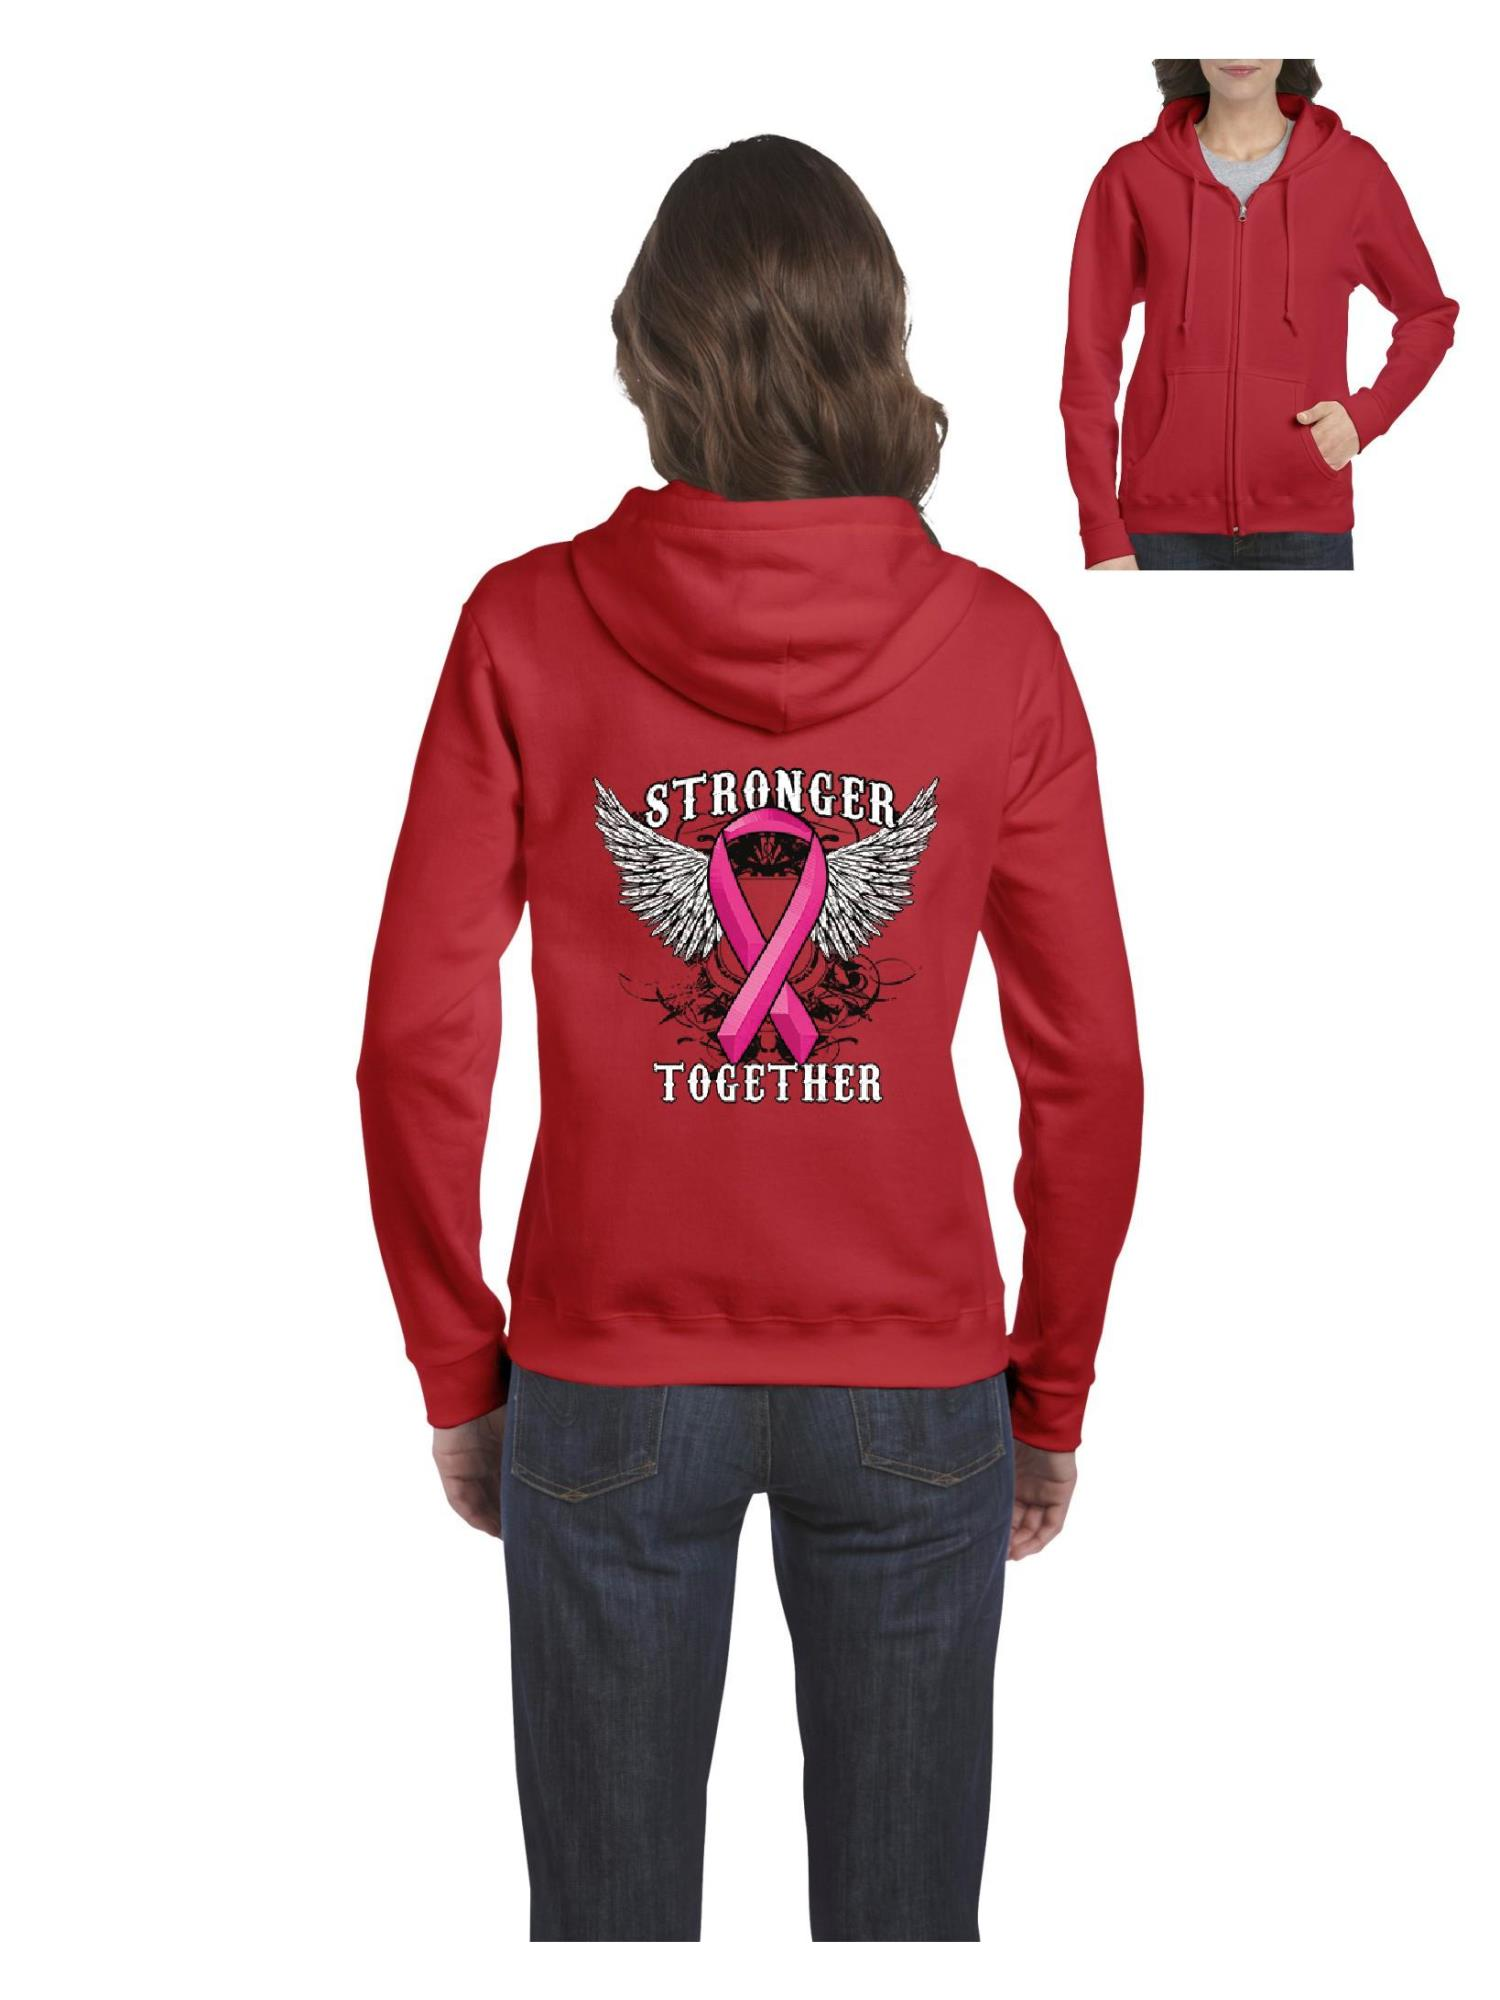 Stronger Together Hoodies Breast Cancer Awareness Sweatshirts